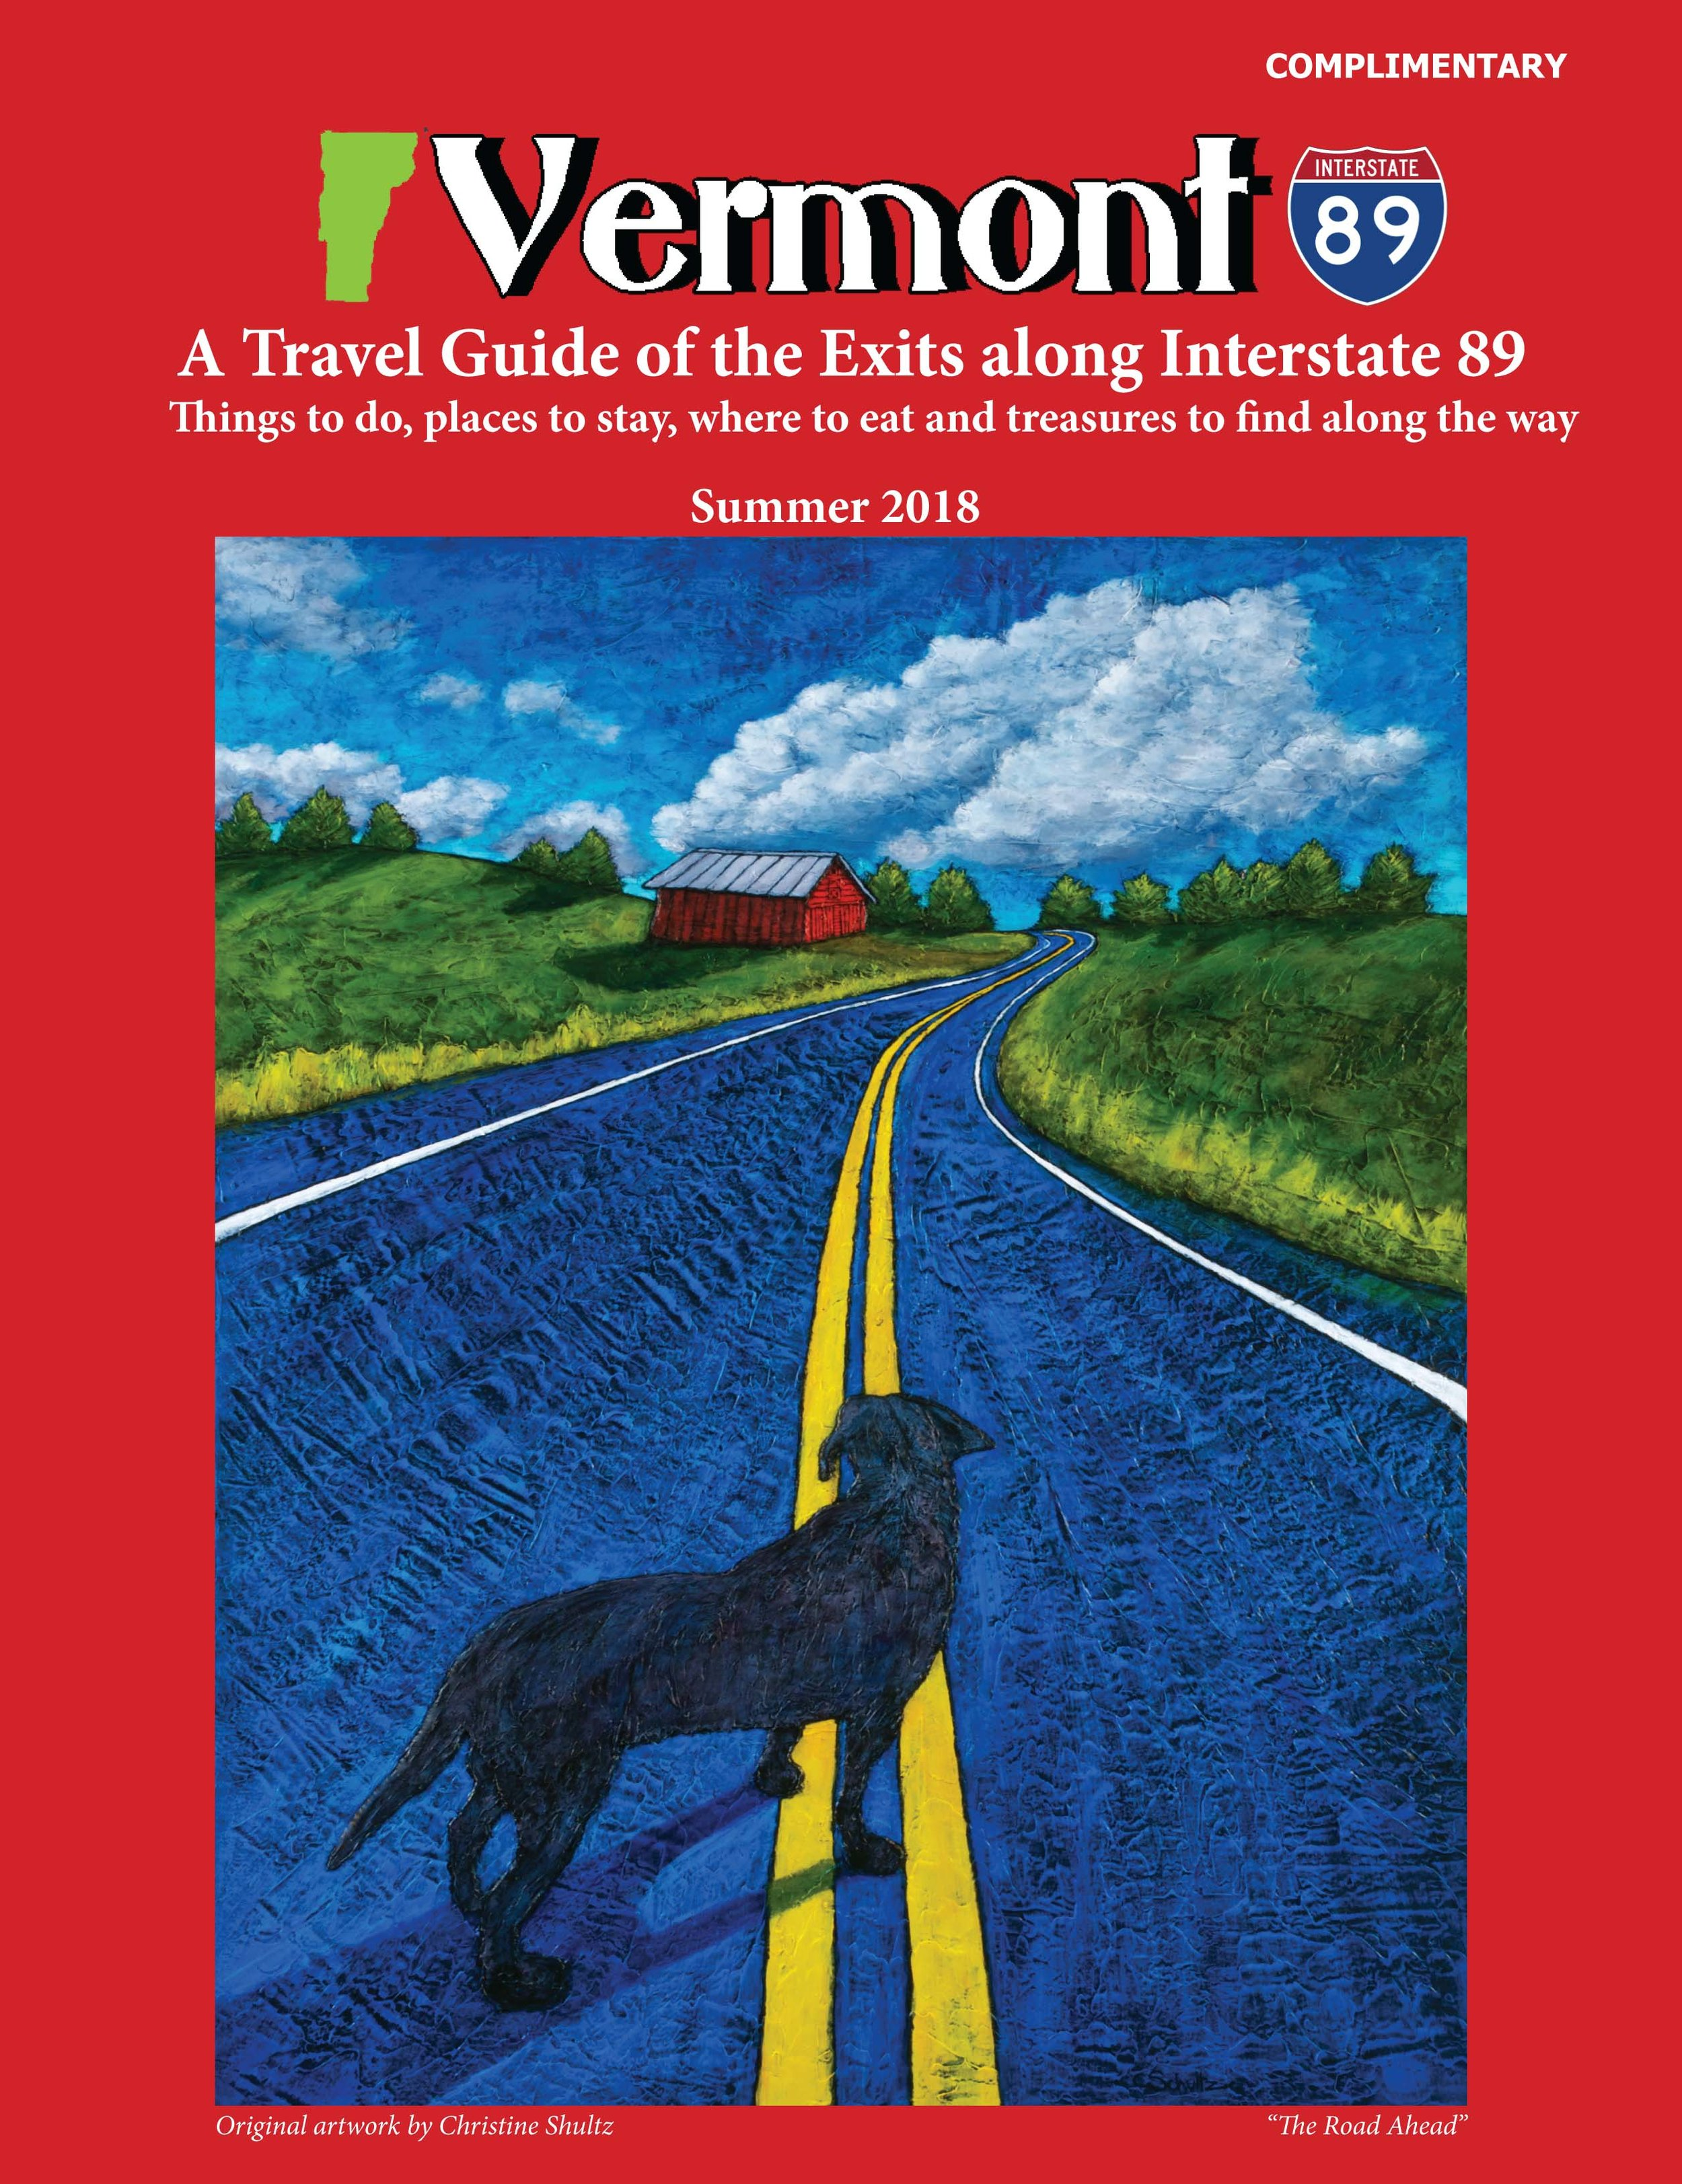 VT89 Summer Cover - The Road Ahead.jpg